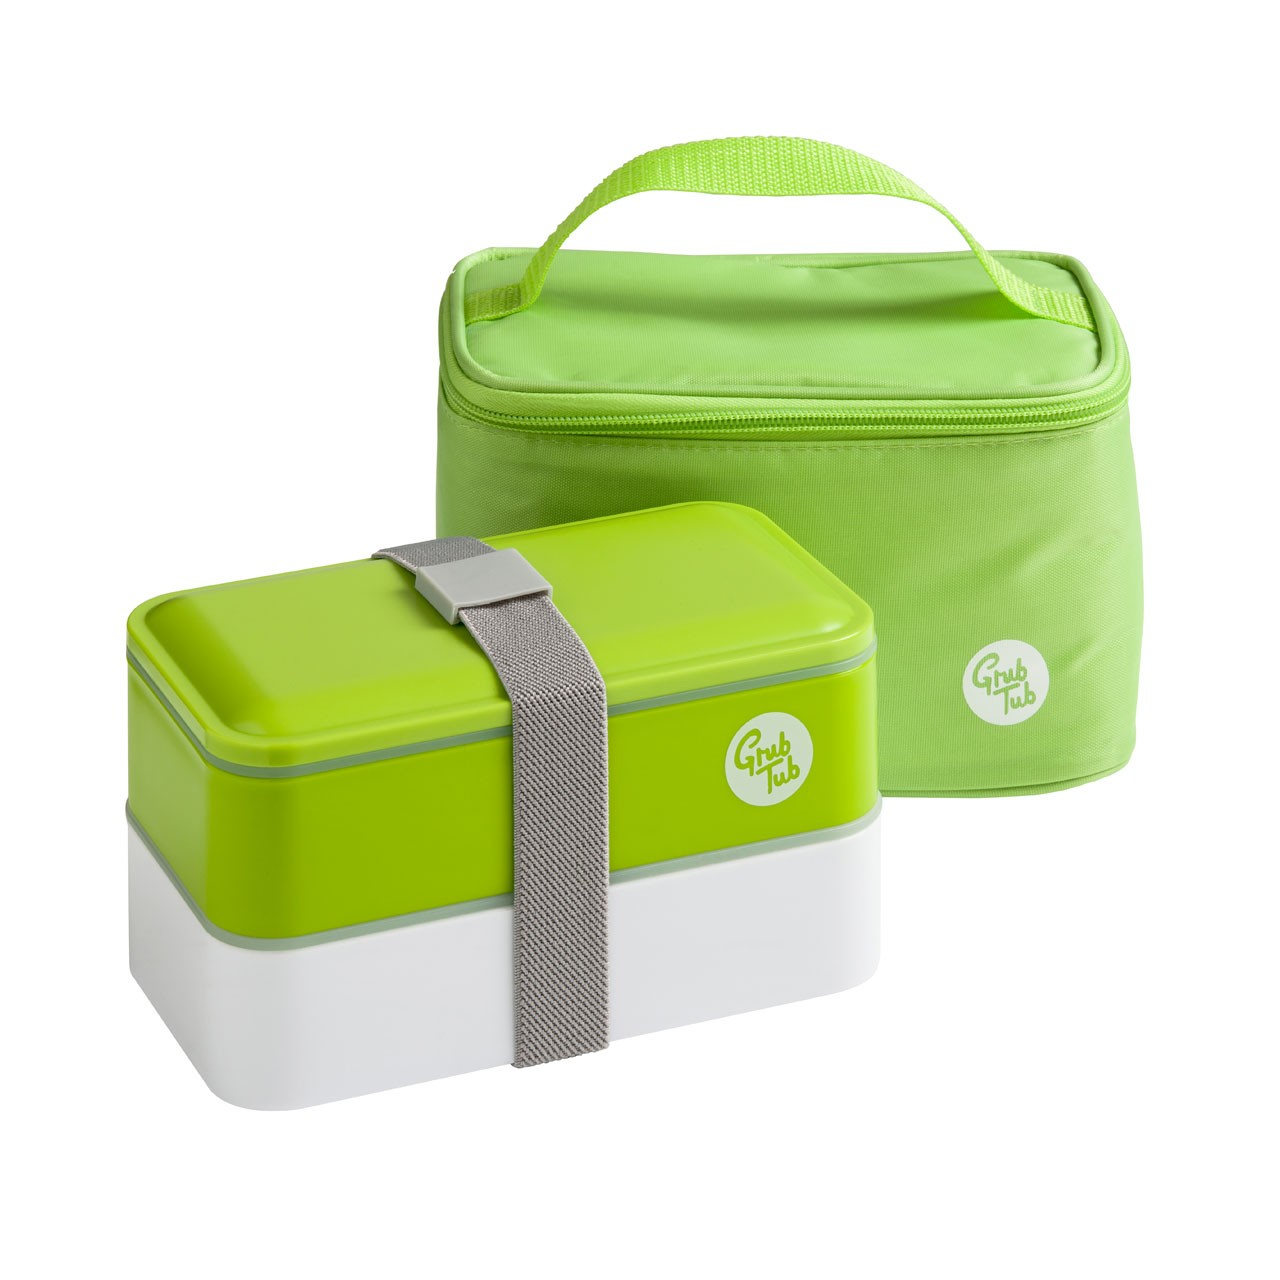 Grub Tub Lunch Box with 2 Containers/Cool Bag/Cutlery - Green